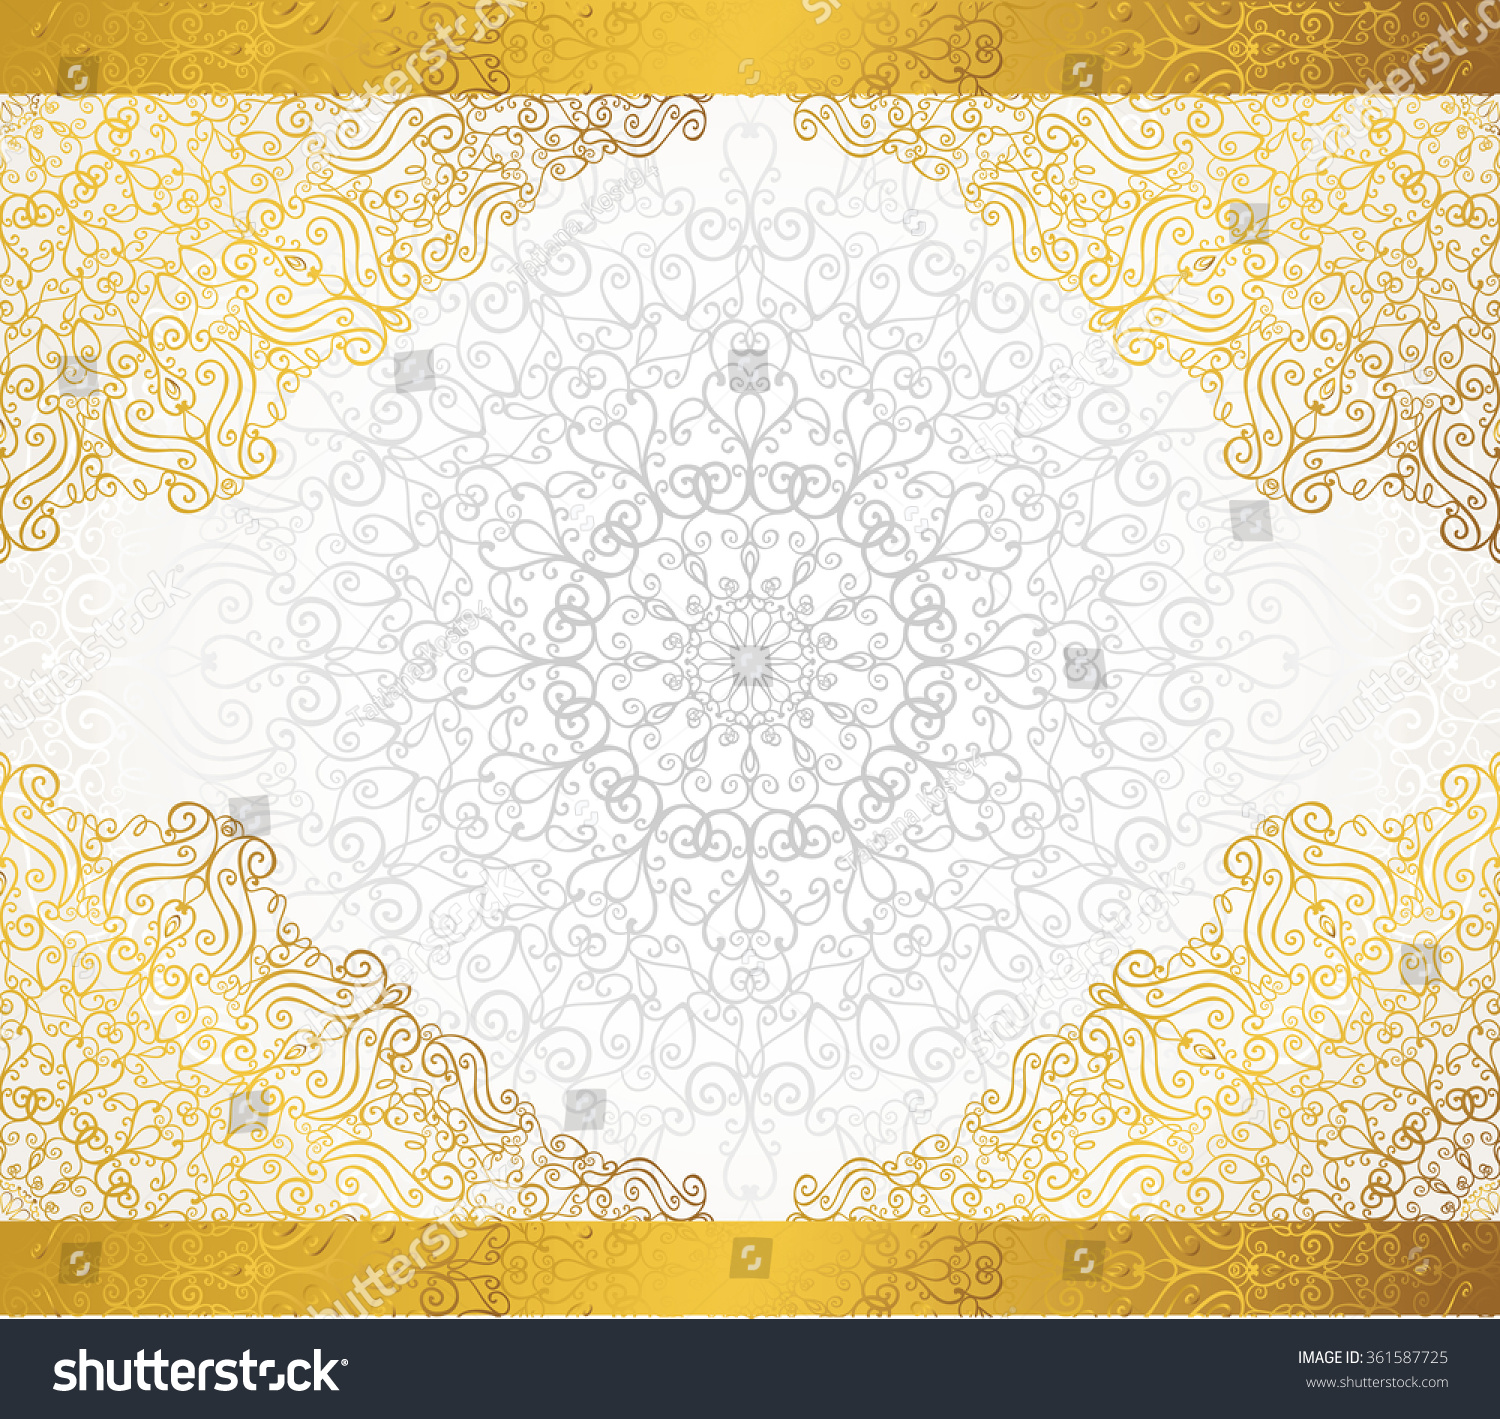 Most Inspiring Wallpaper Marble Mandala - stock-vector-mandala-pattern-background-vintage-decorative-ornament-background-east-islam-arabic-indian-motifs-361587725  2018_916640.jpg